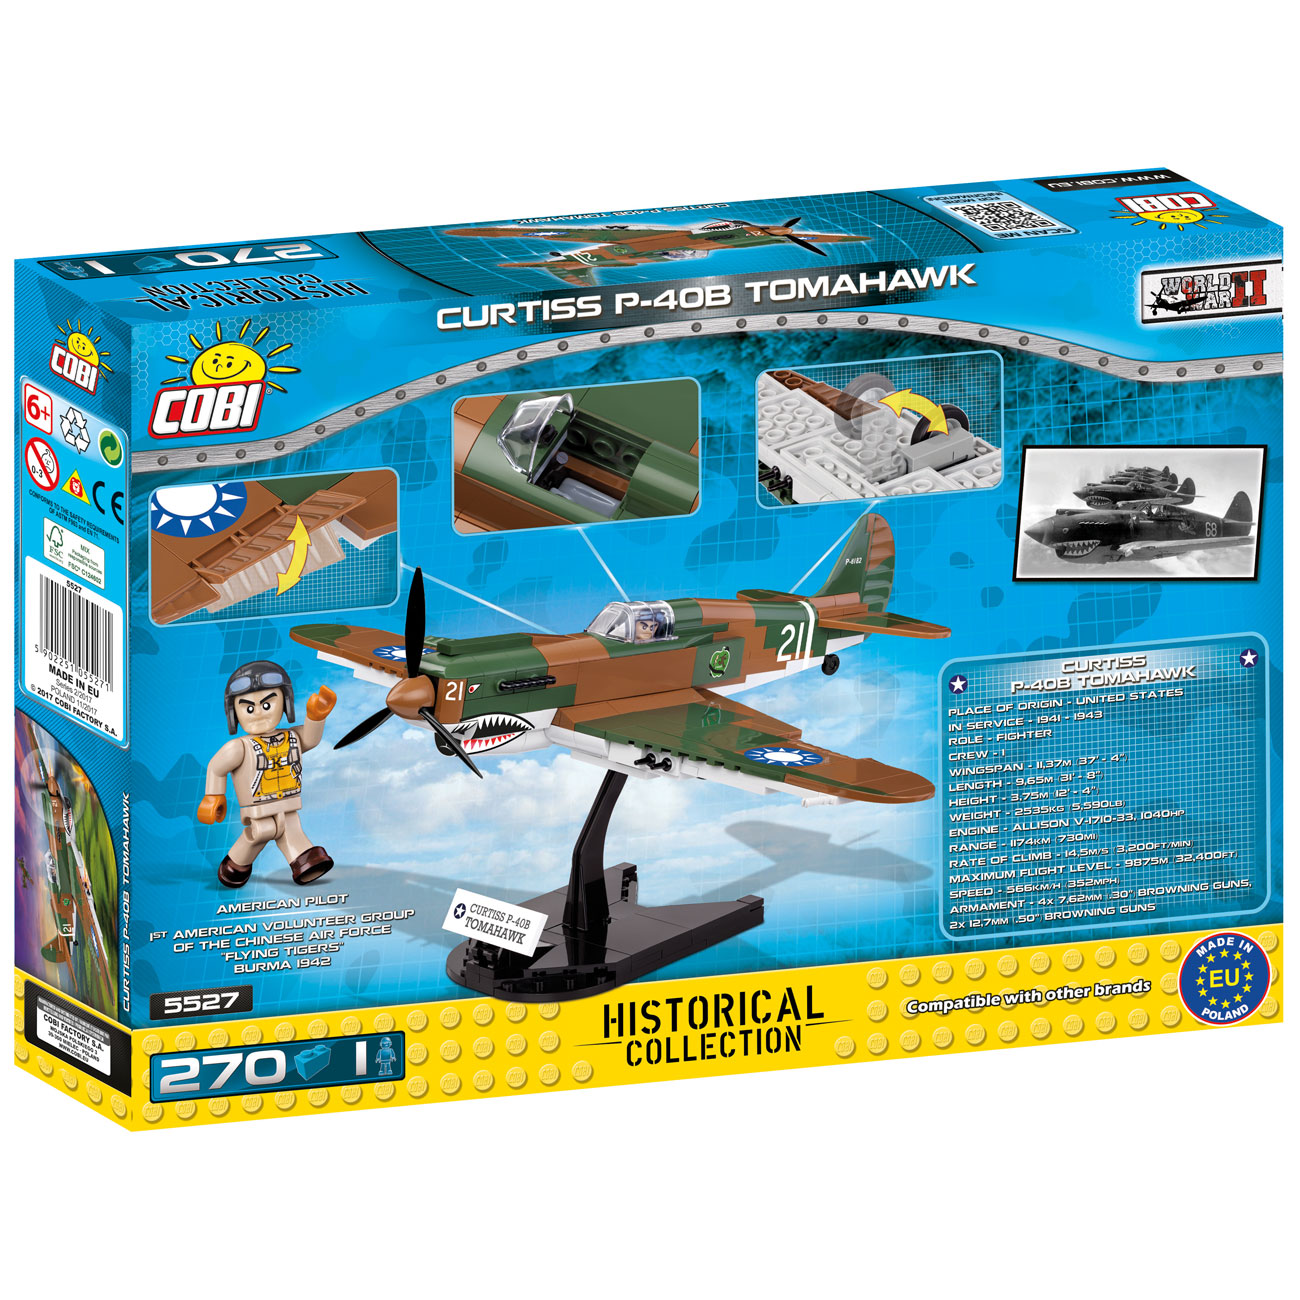 Cobi Historical Collection Bausatz Flugzeug P-40B Tomahawk 270 Teile 5527 2